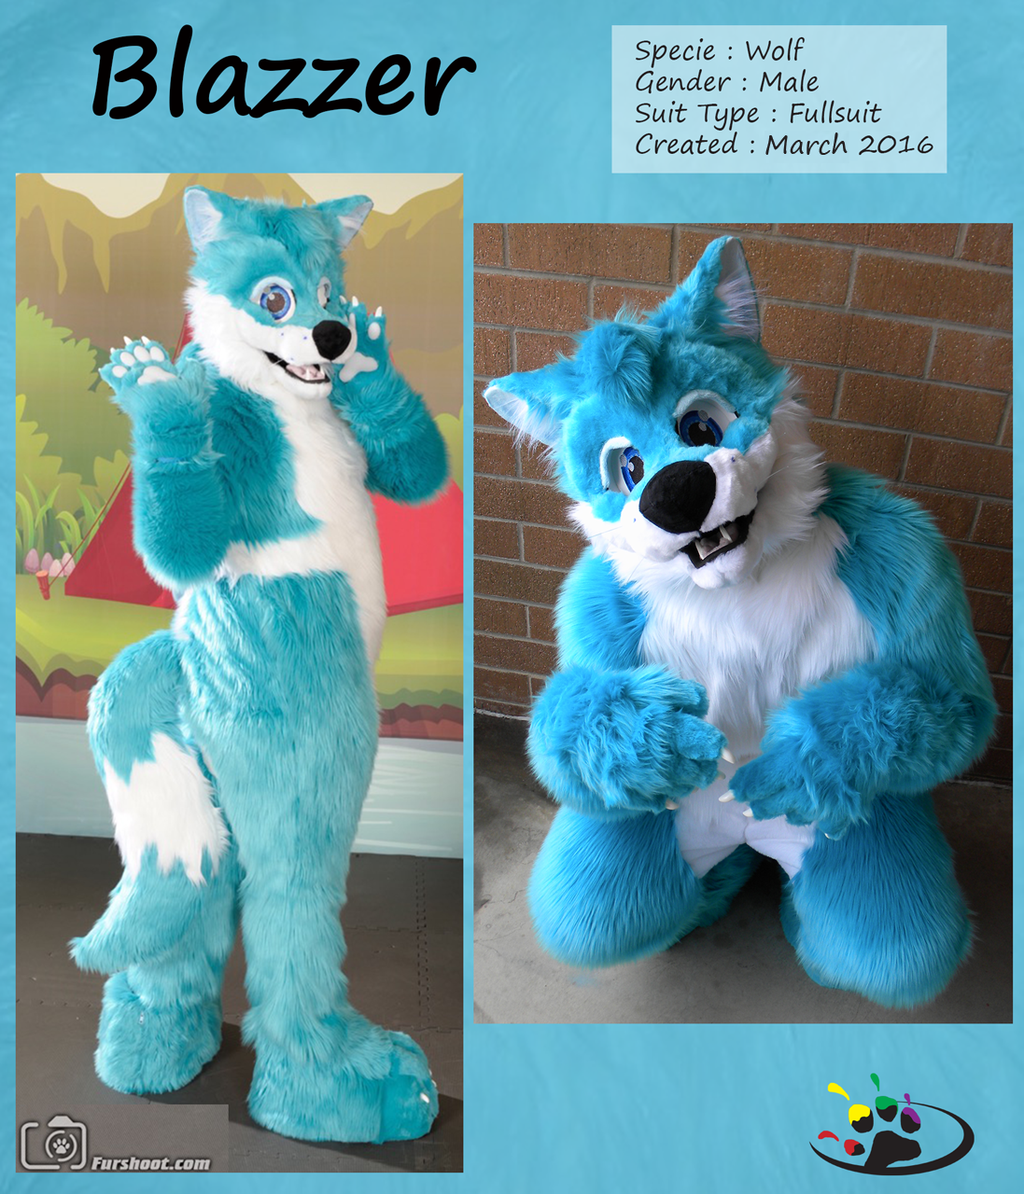 Most recent image: Blazzer the Happy Wolf (Fullsuit)